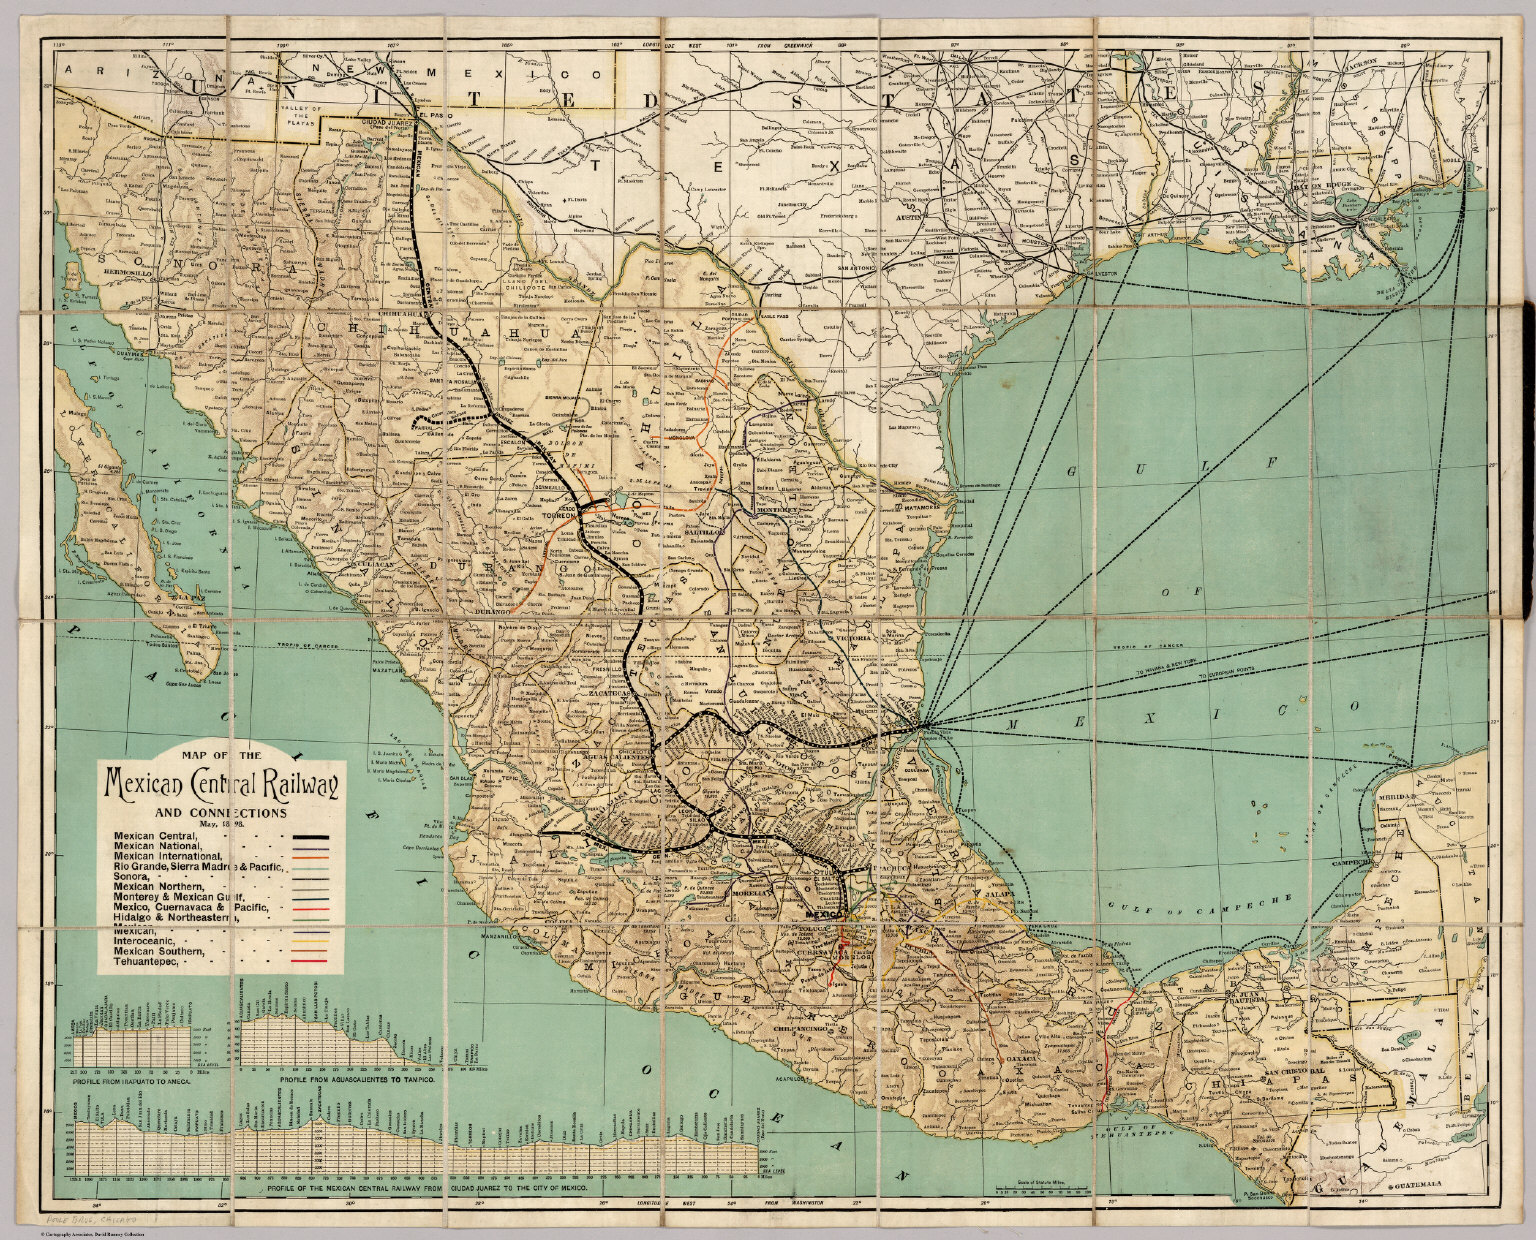 Frontispiece Mexican Central Railway David Rumsey Historical Map